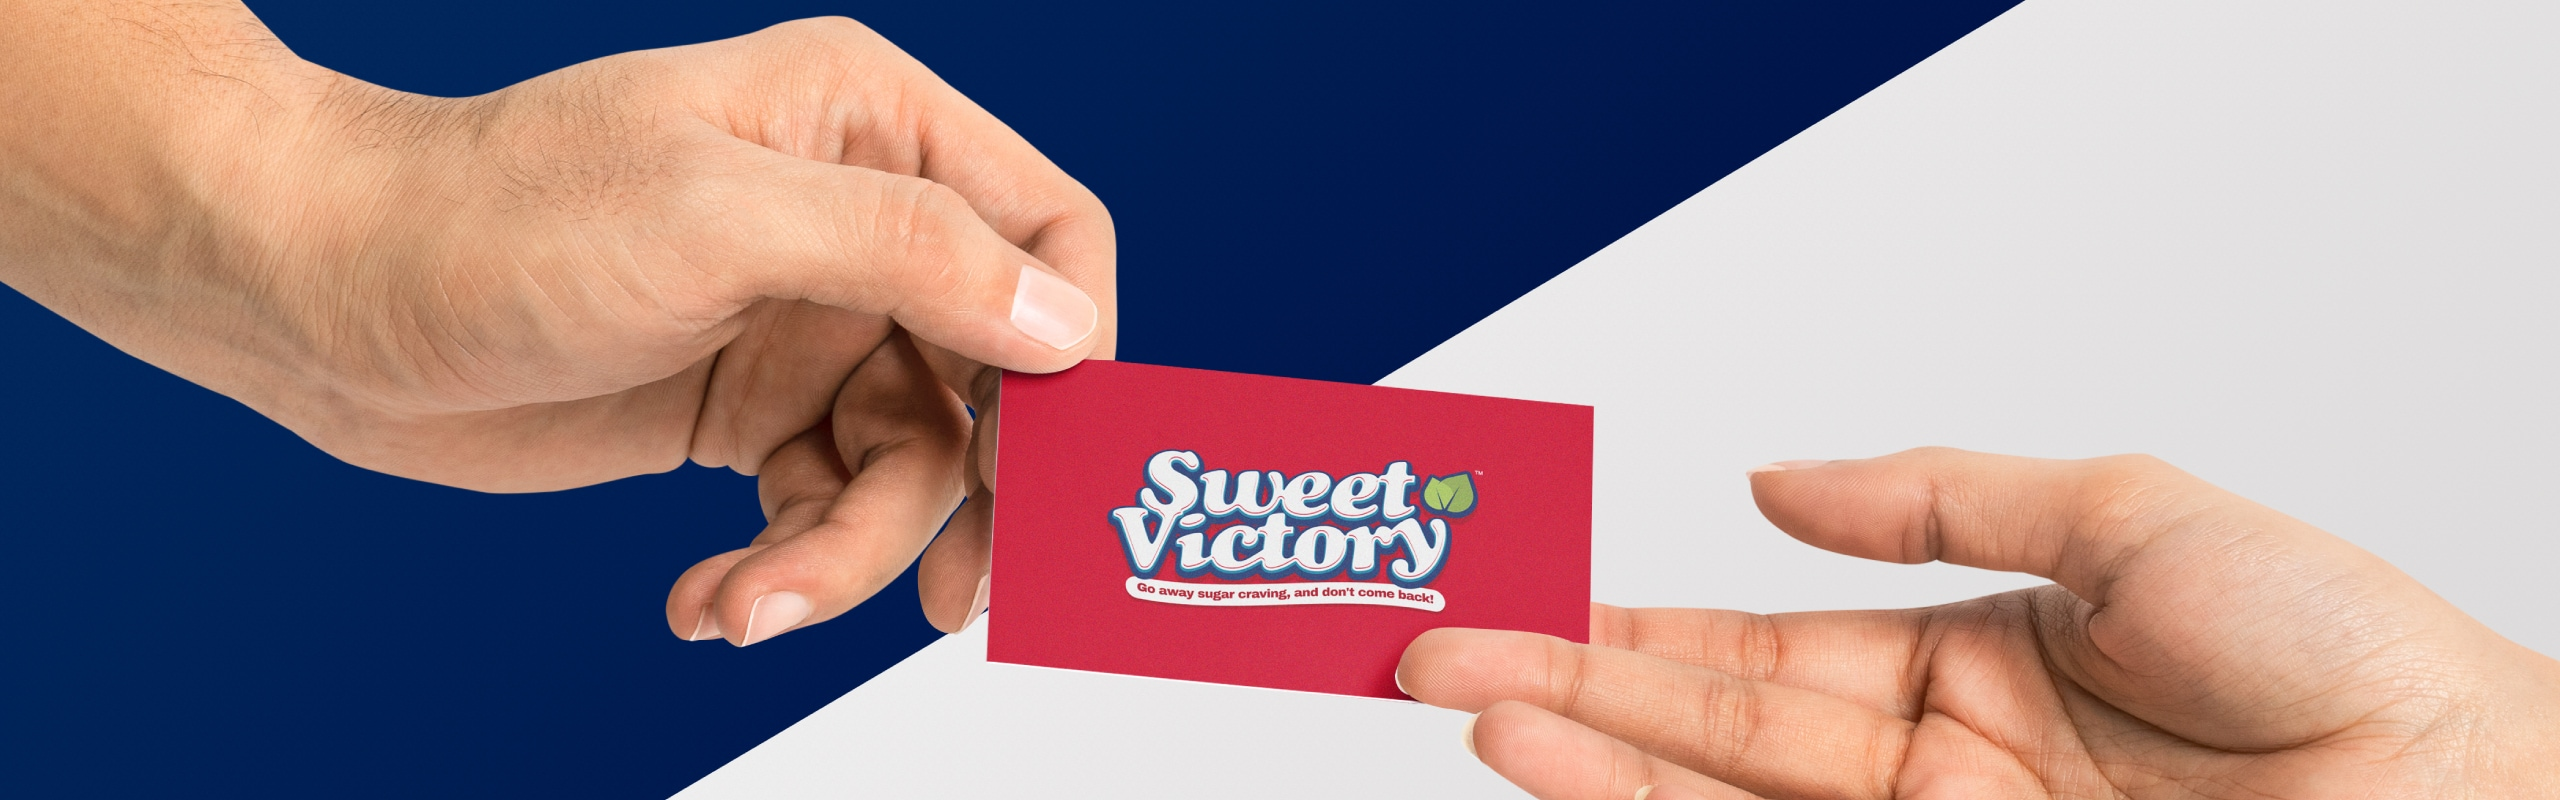 Sweet Victory - 07 - Natie Branding Agency